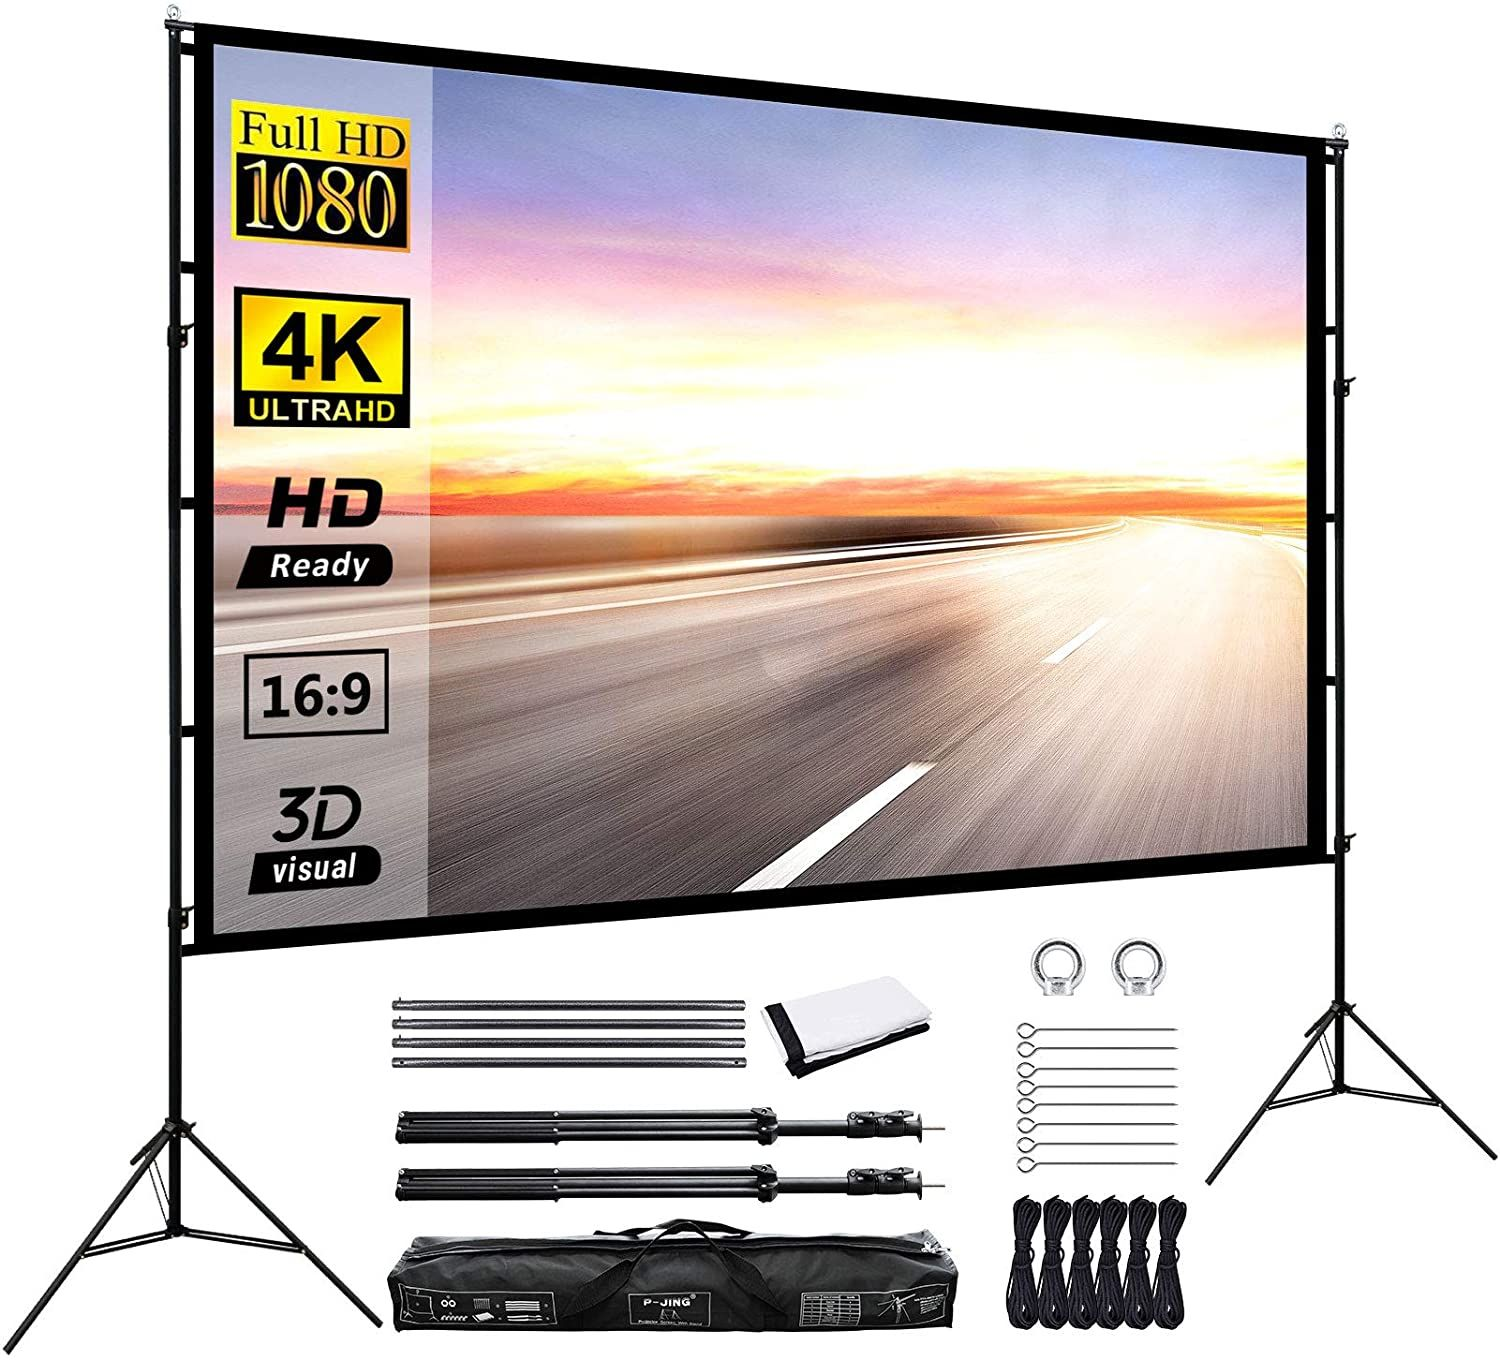 Projector Screen With Stand 120inch Portable Projection Screen 16 9 4k Hd Rear Front Projections Movies Sc Outdoor Projector Best Projector Screen Movie Screen